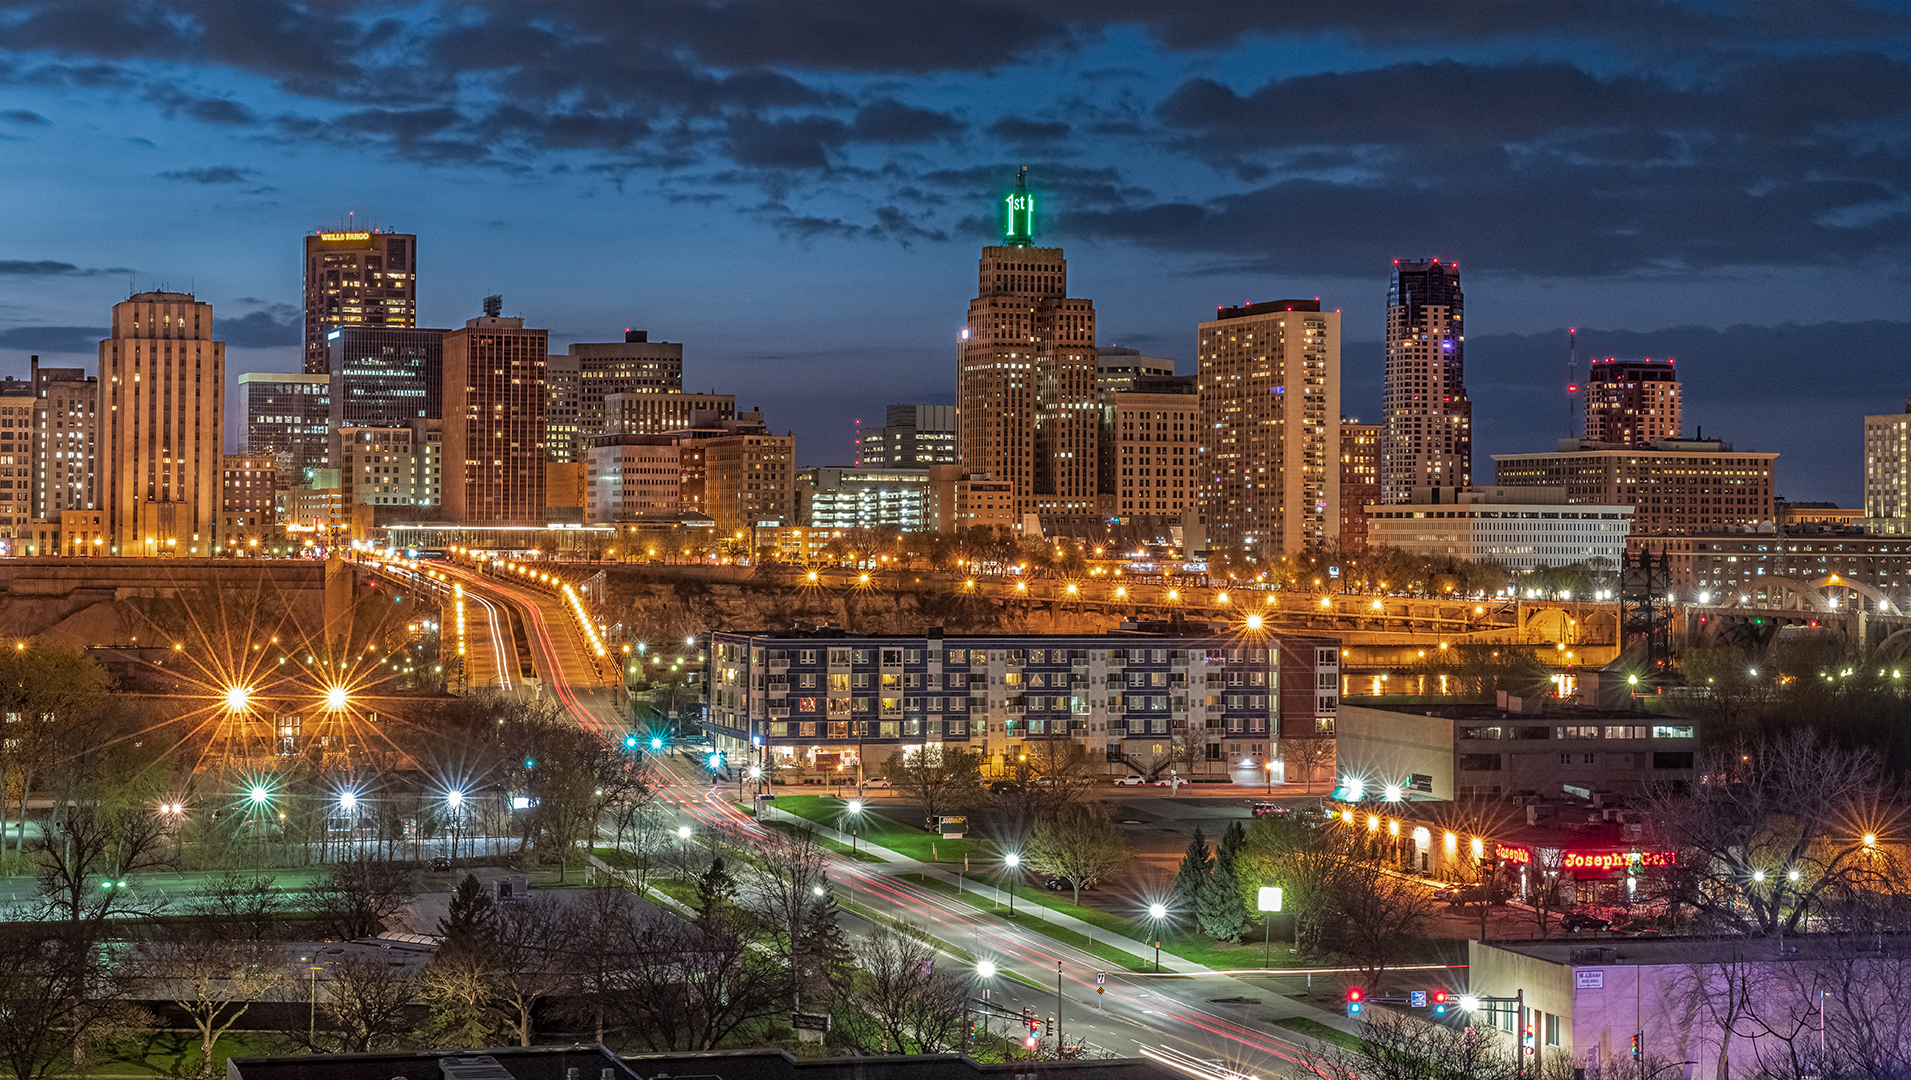 Bruce Barsness - City of St Paul at Nigh